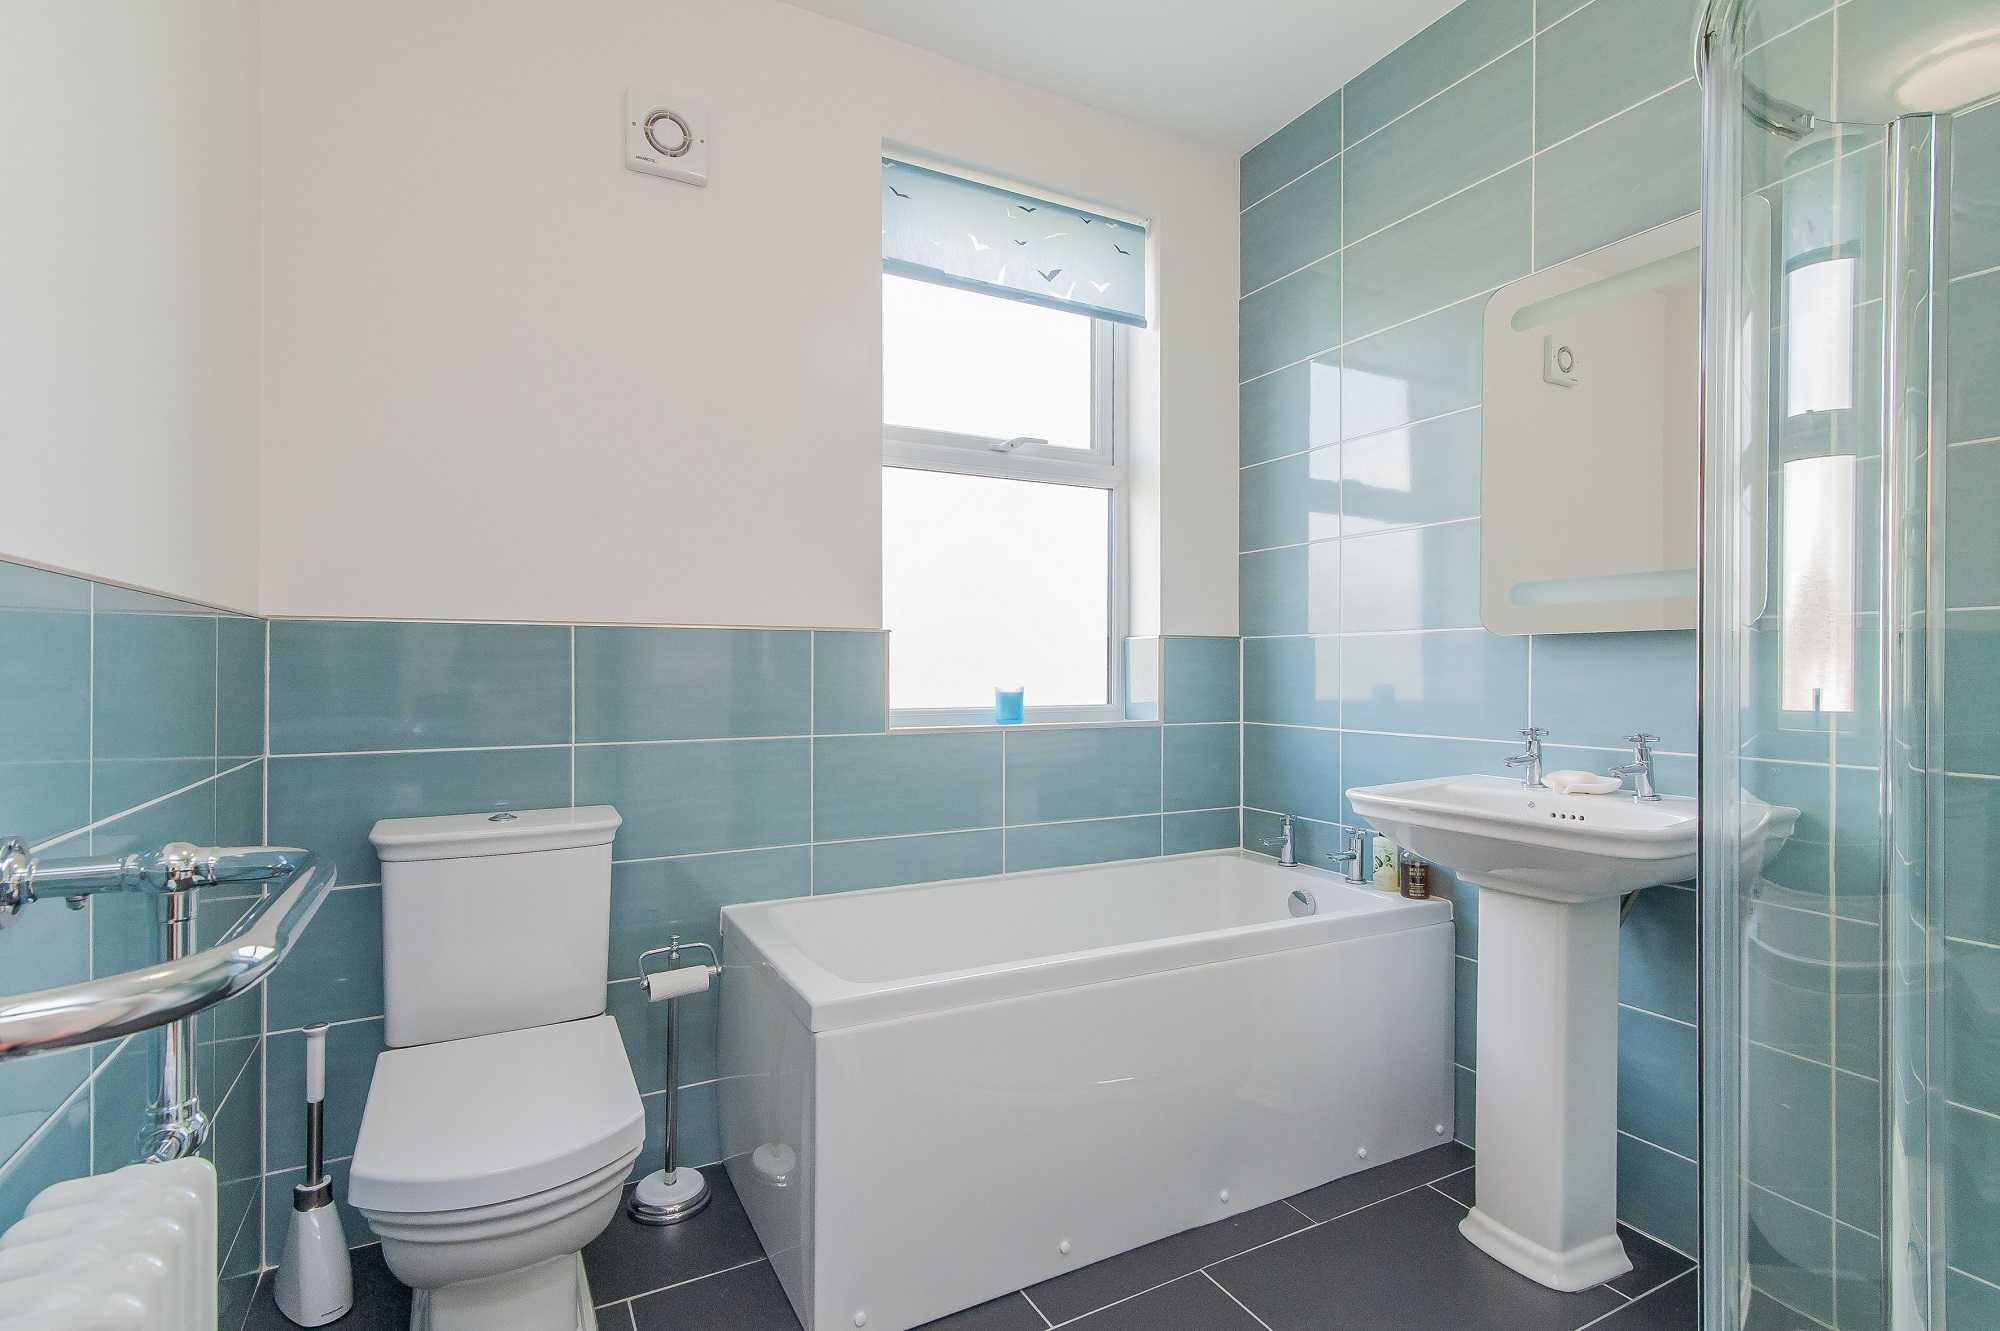 Putney Plumbers Bathroom Installation